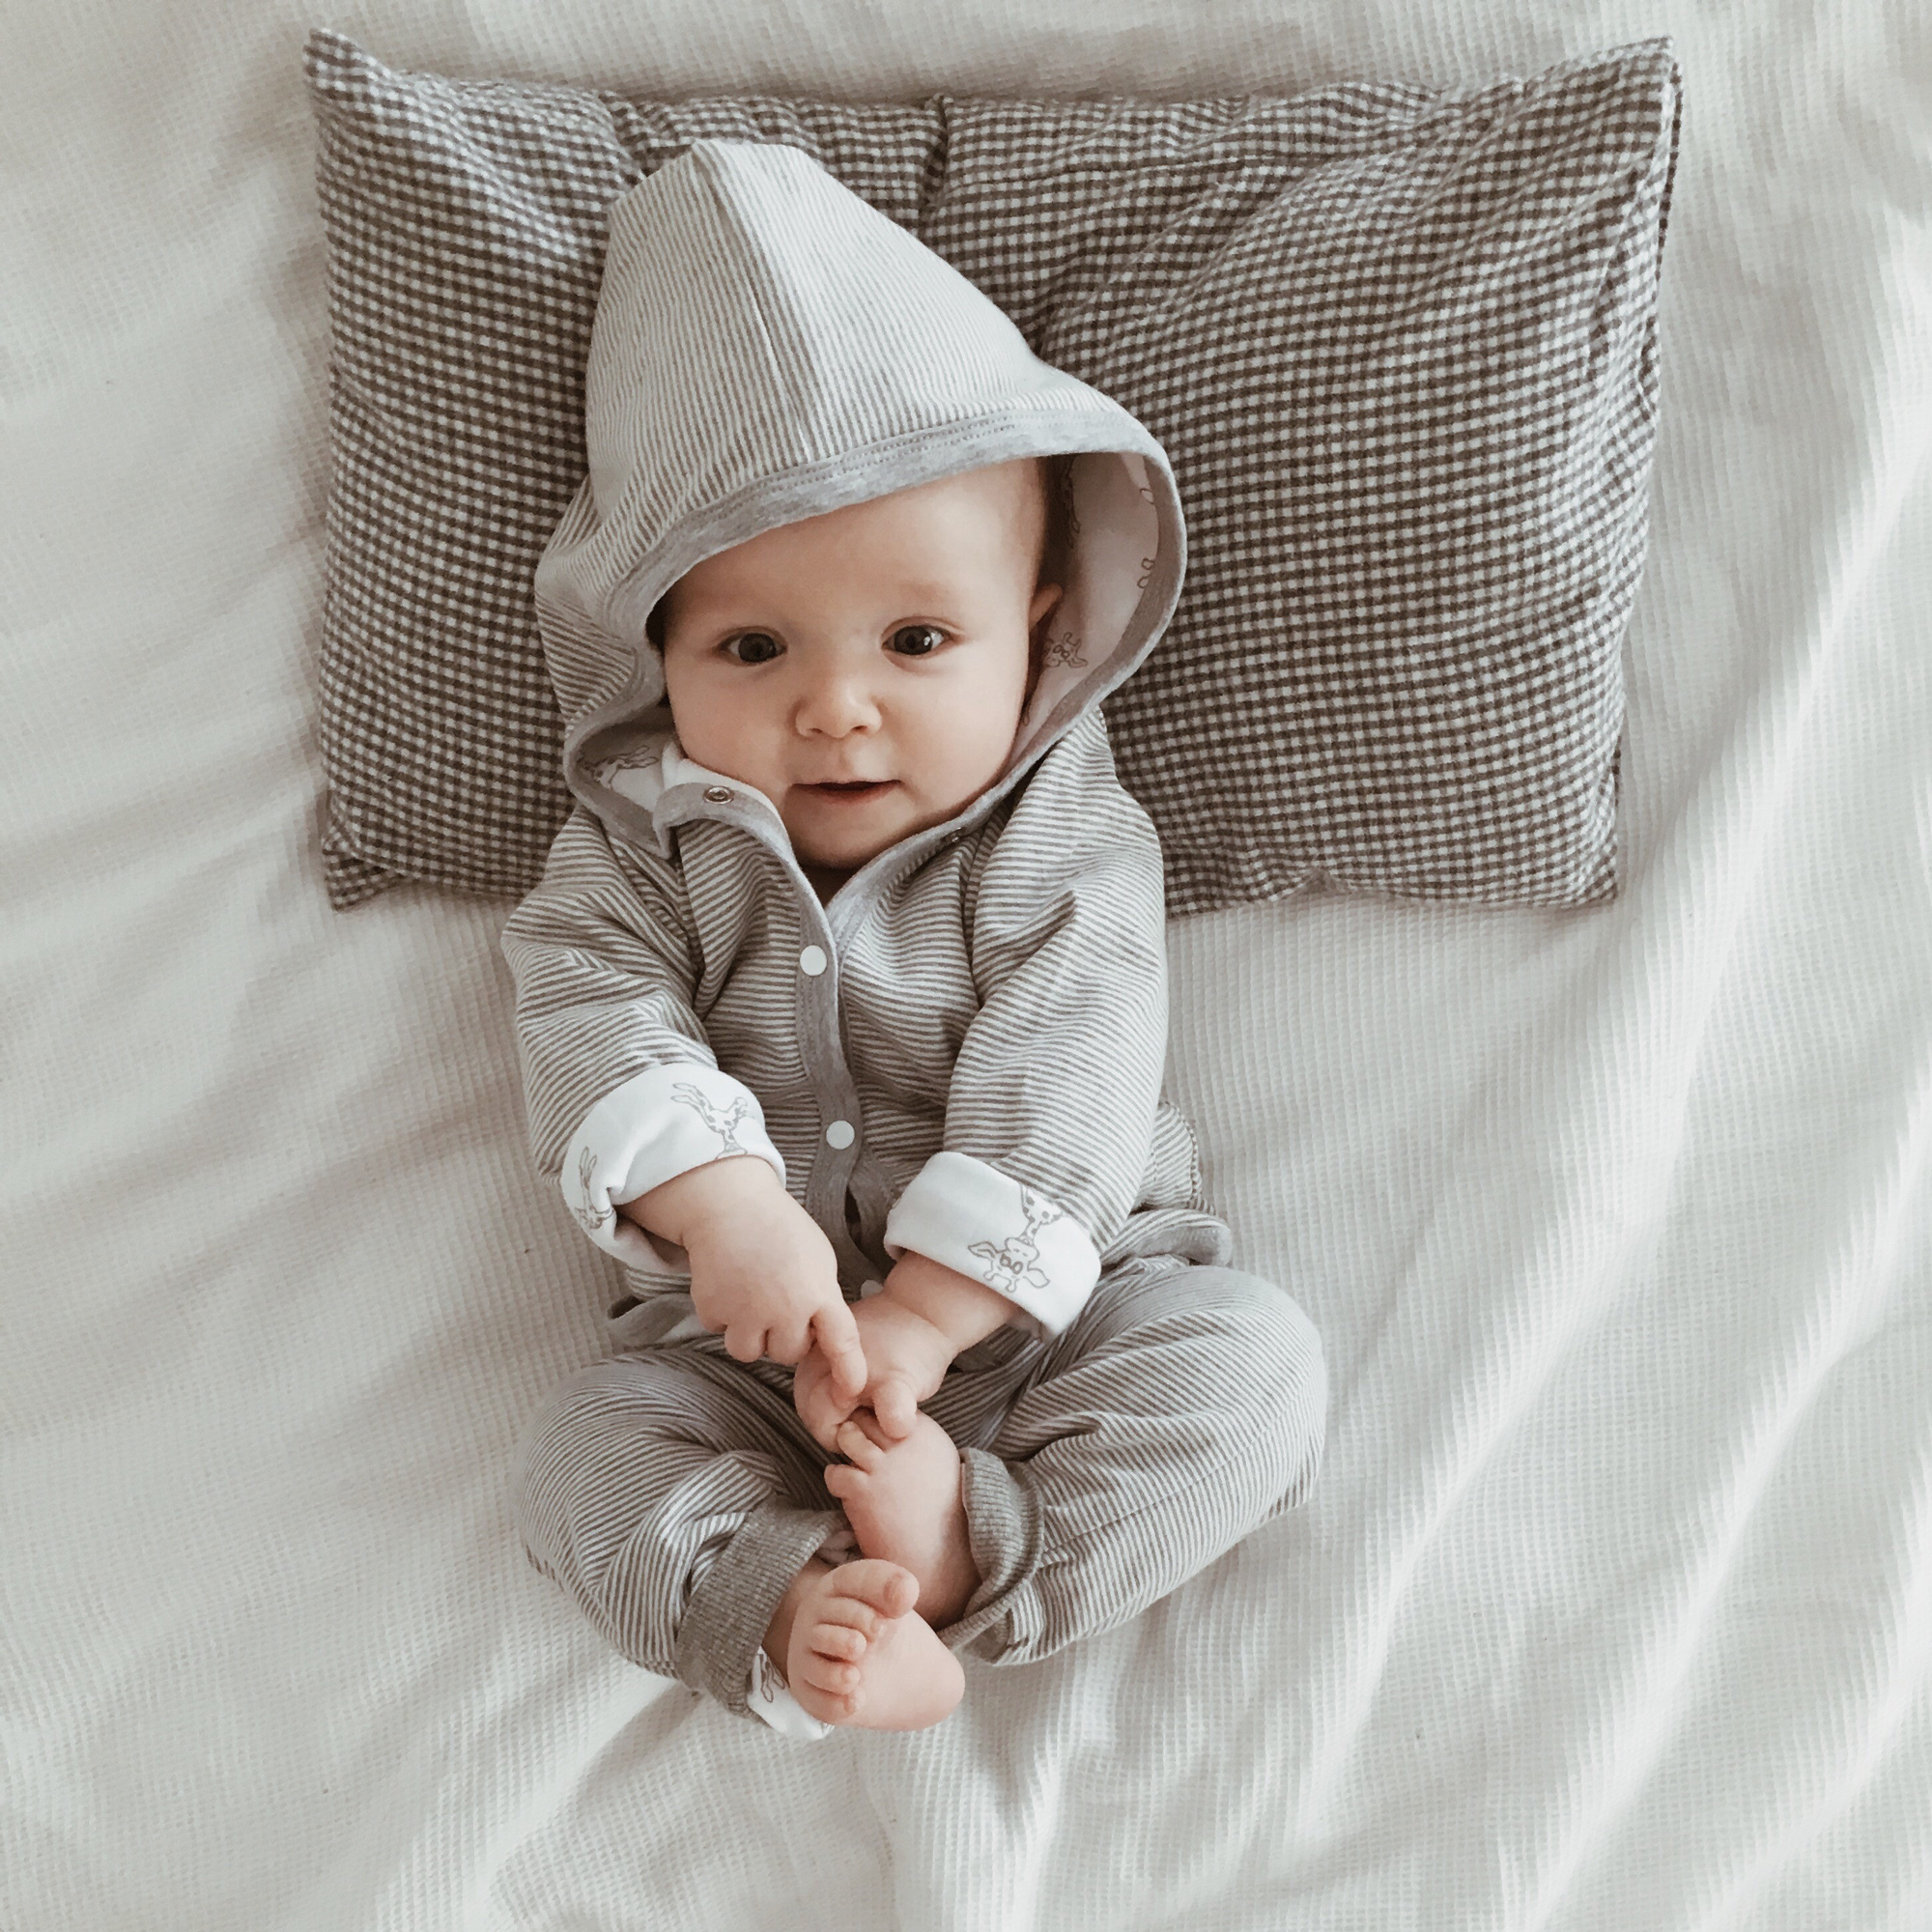 Gigil - A new baby clothing brand - Healthy Life Guide